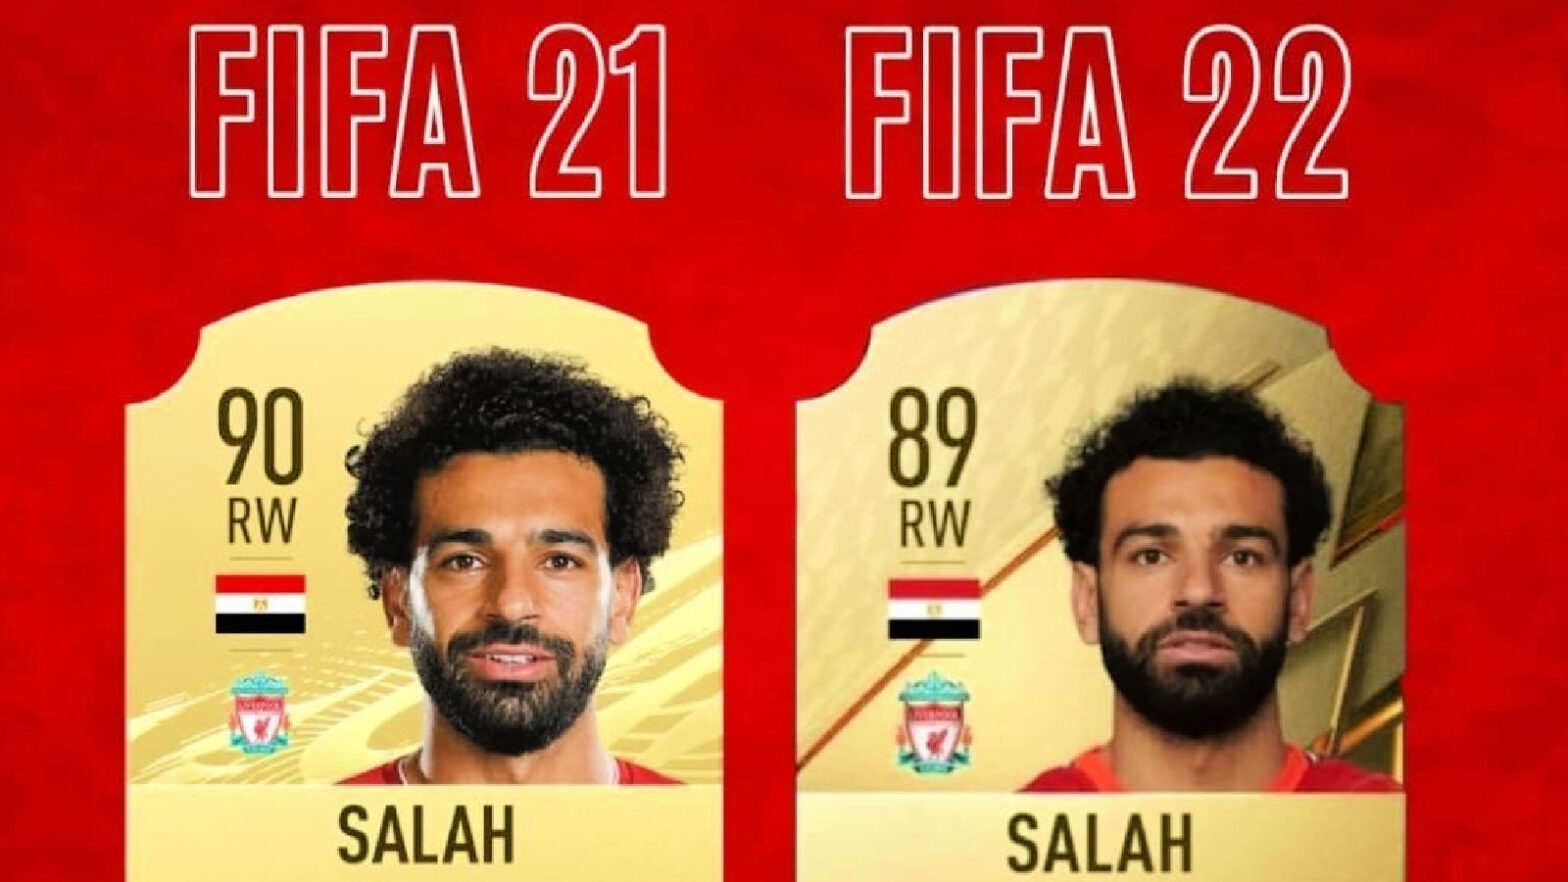 Mohamed Salah with a downgrade in FIFA 22